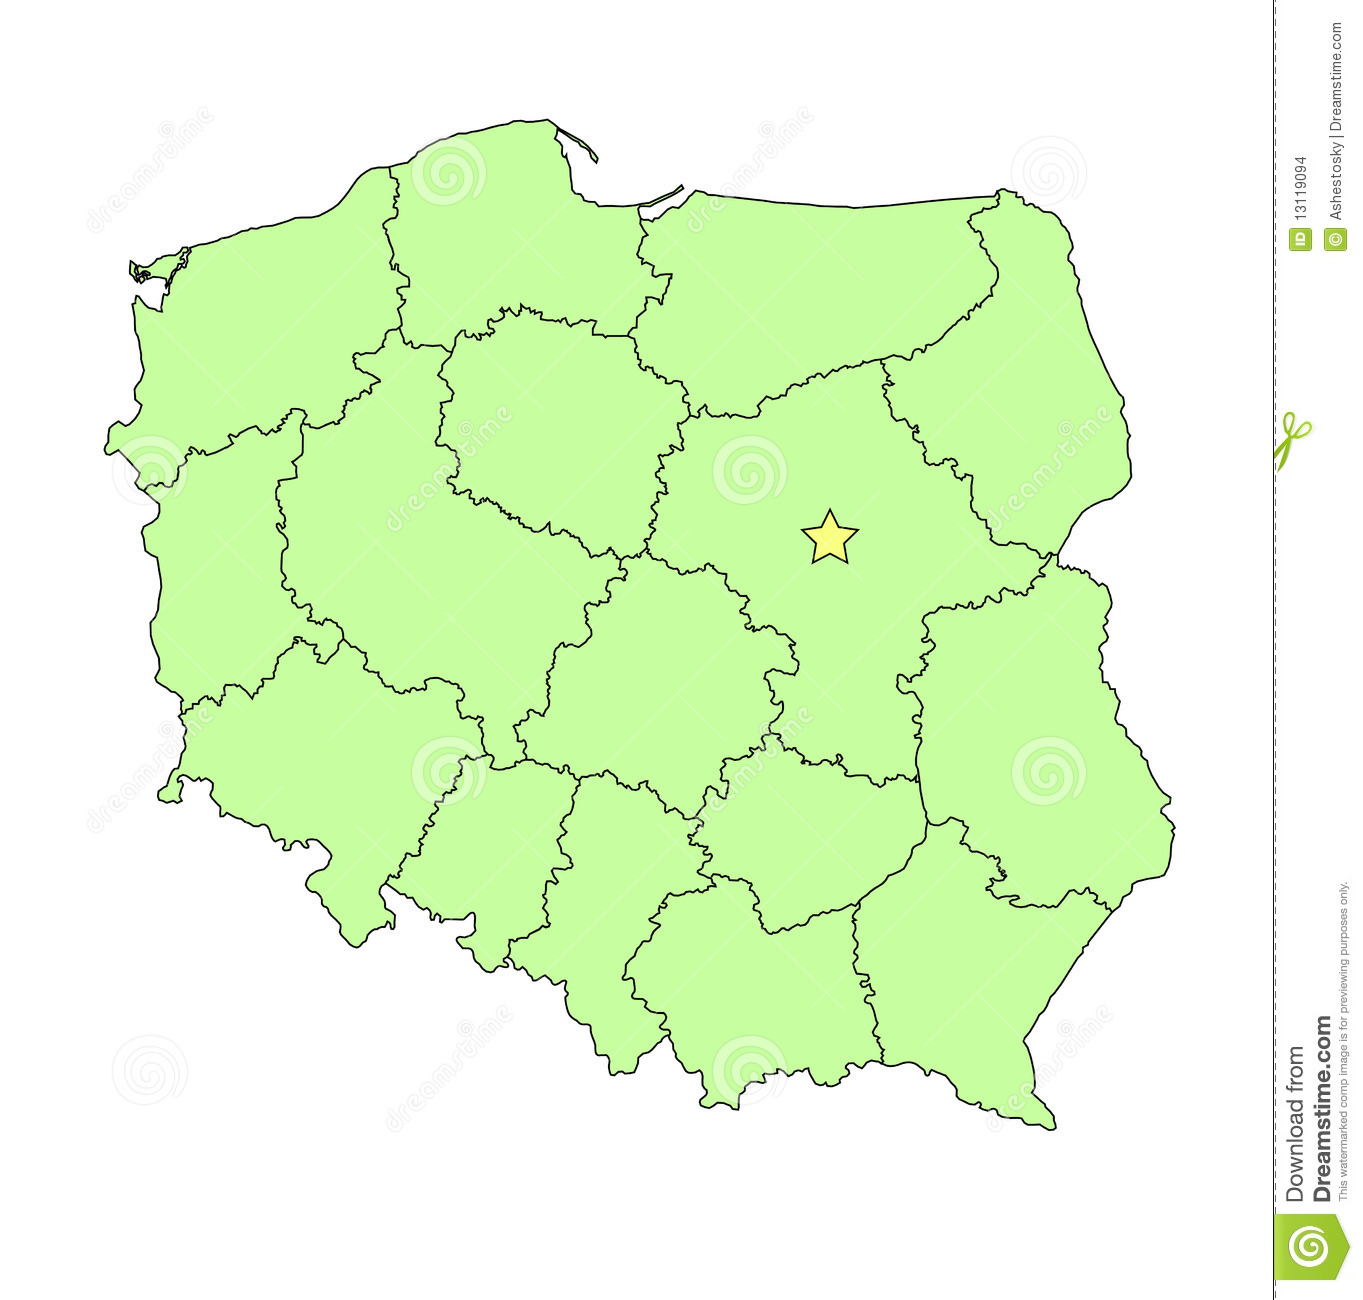 Capital Of Poland Map.Map Capital Poland